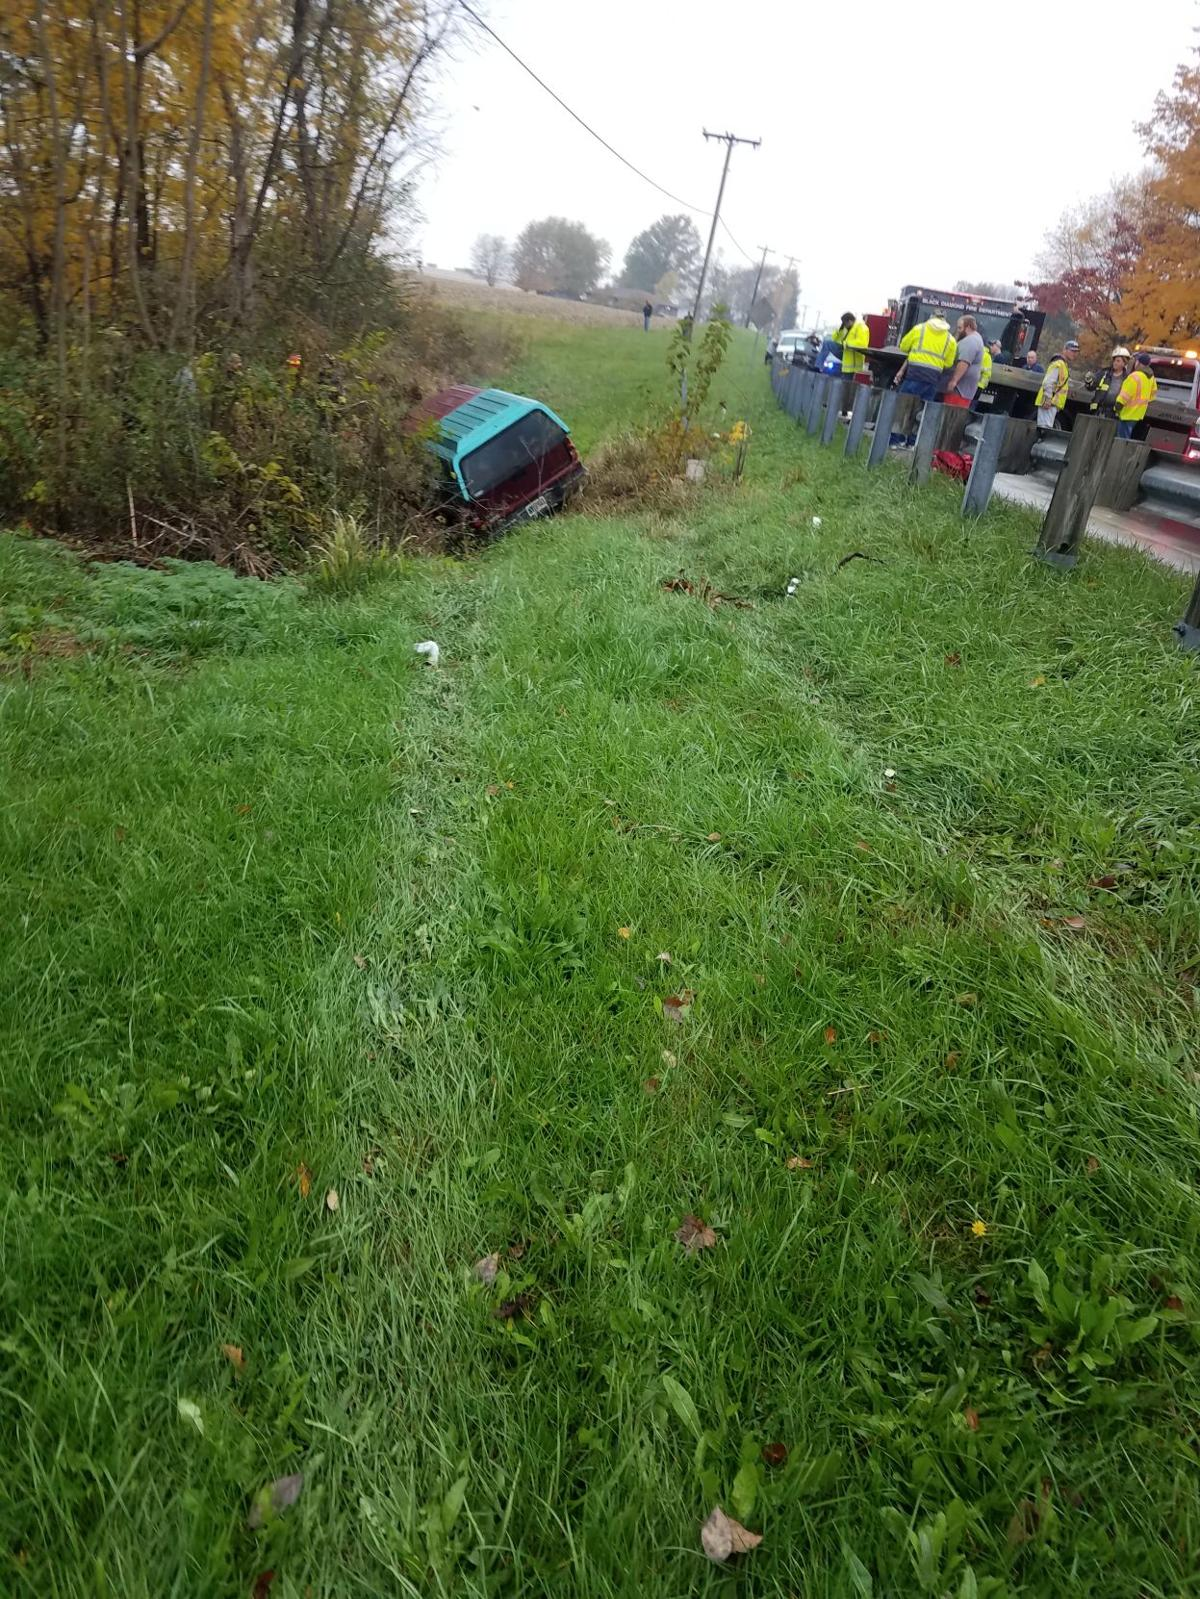 vermilion county hindu singles Georgetown – the vermilion county coroner's office and vermilion county sheriff's department continue to investigate a fatal single-car accident thursday night that killed a 30-year-old.